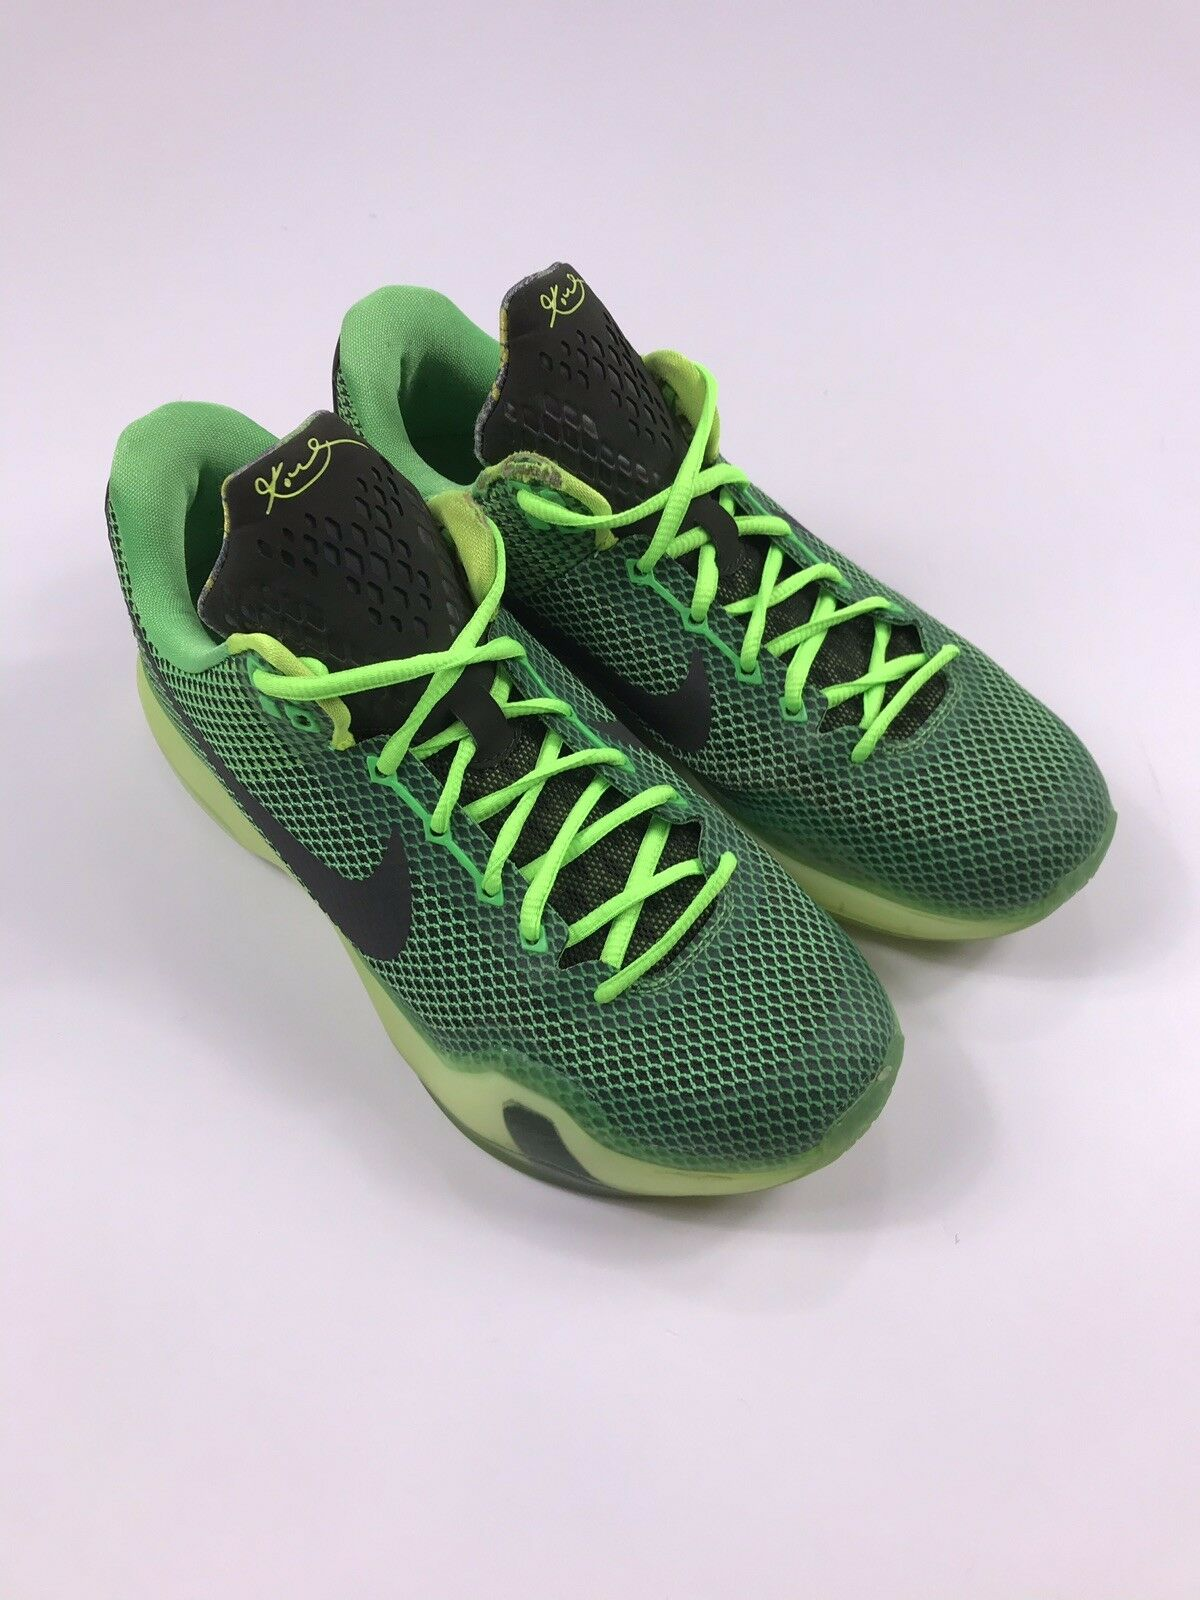 Men's NIKE Kobe X Green Vino 705317-333 Basketball shoes Size 7 US